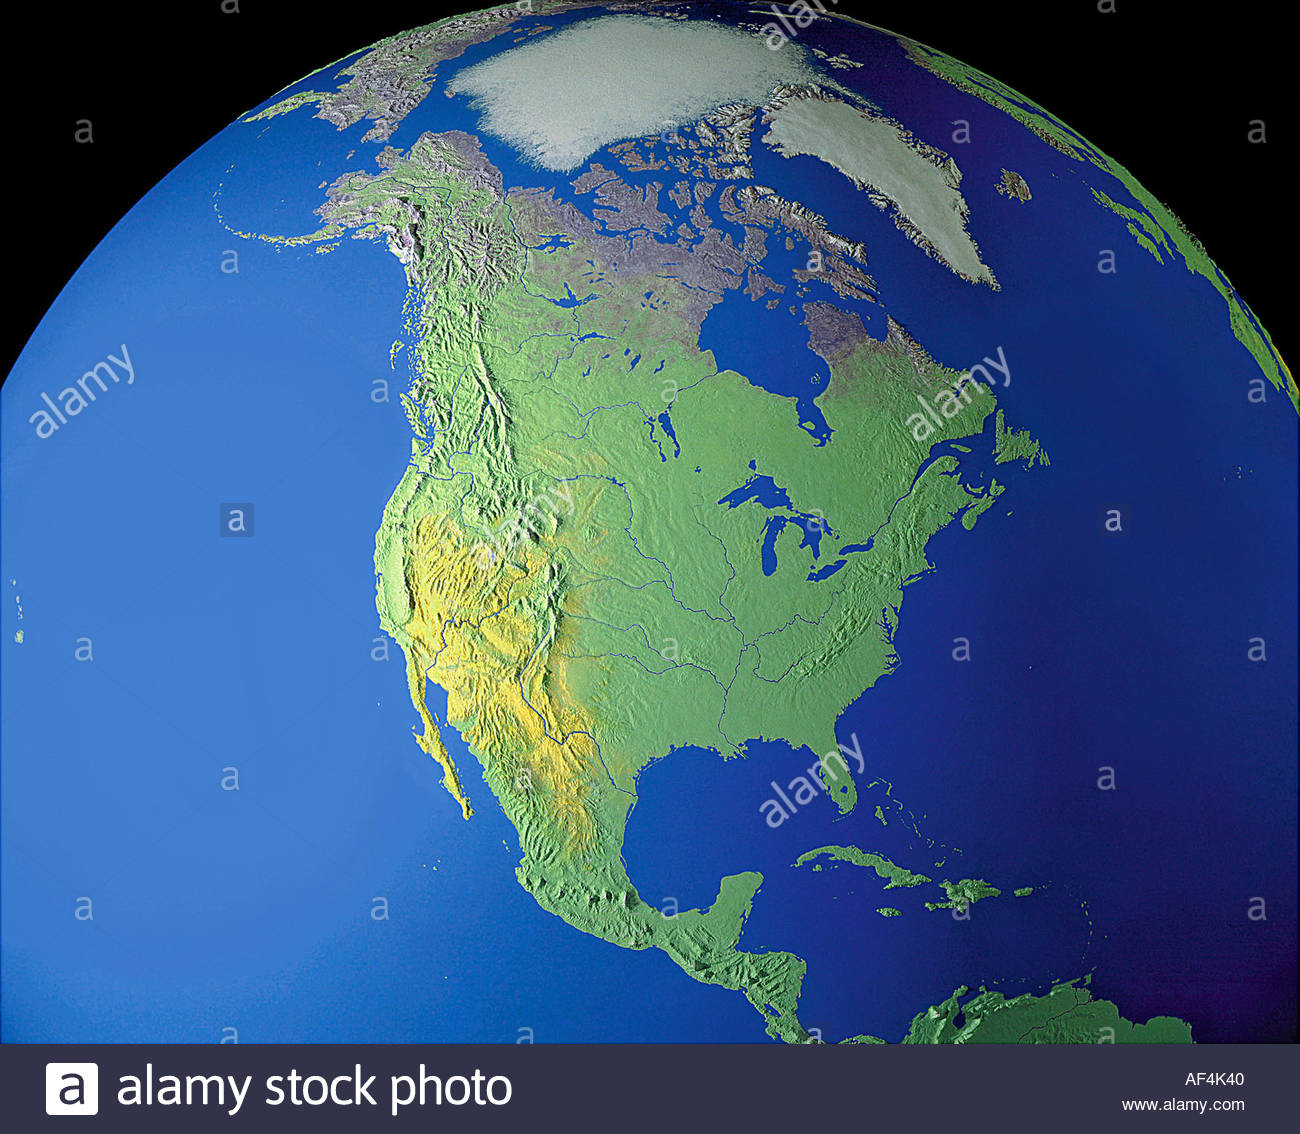 Map Maps Globe Globes North America USA Canada Mexico Arctis Stock - Usa canada mexico map